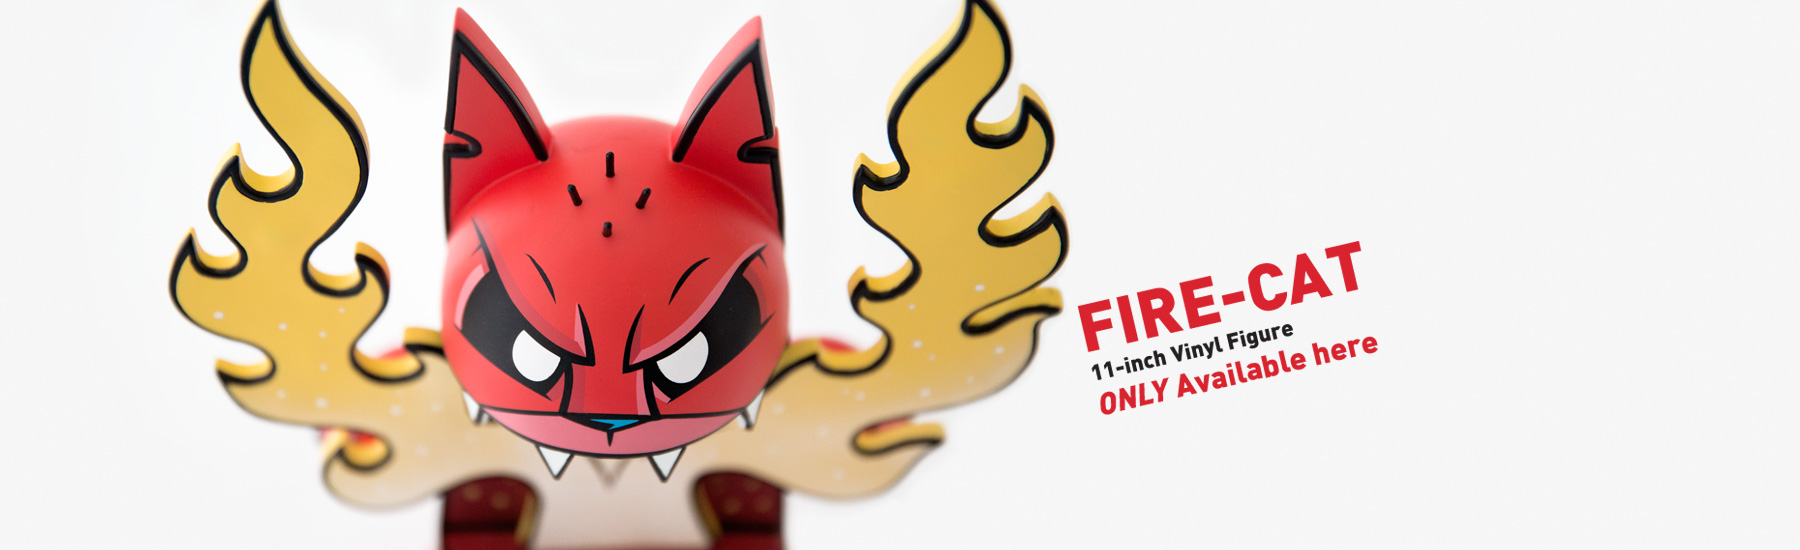 loading Fire-Cat banner